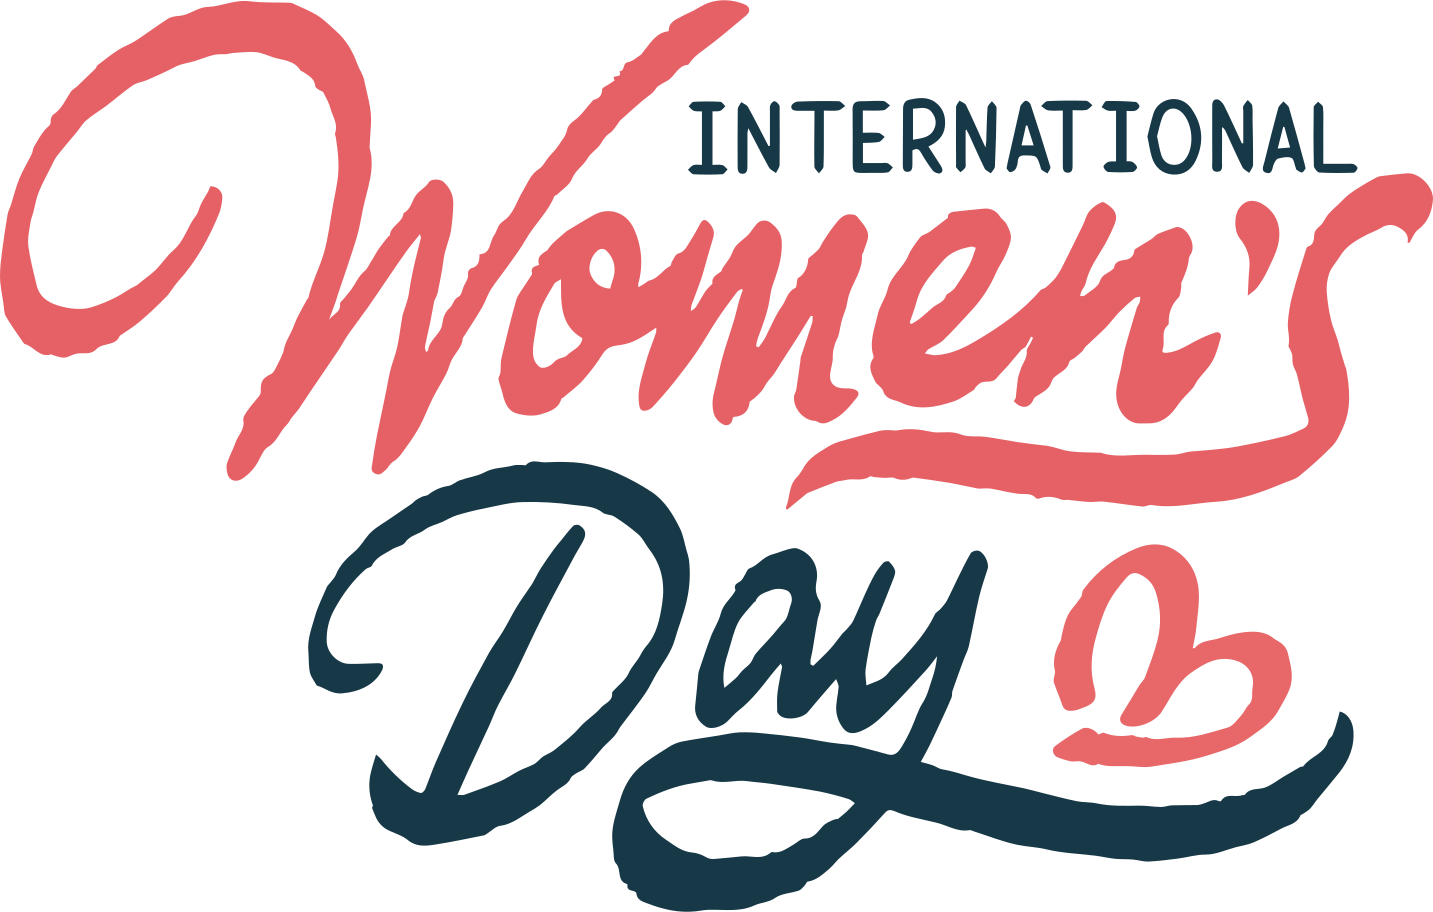 international-women's-day Clipart illustration in PNG, SVG